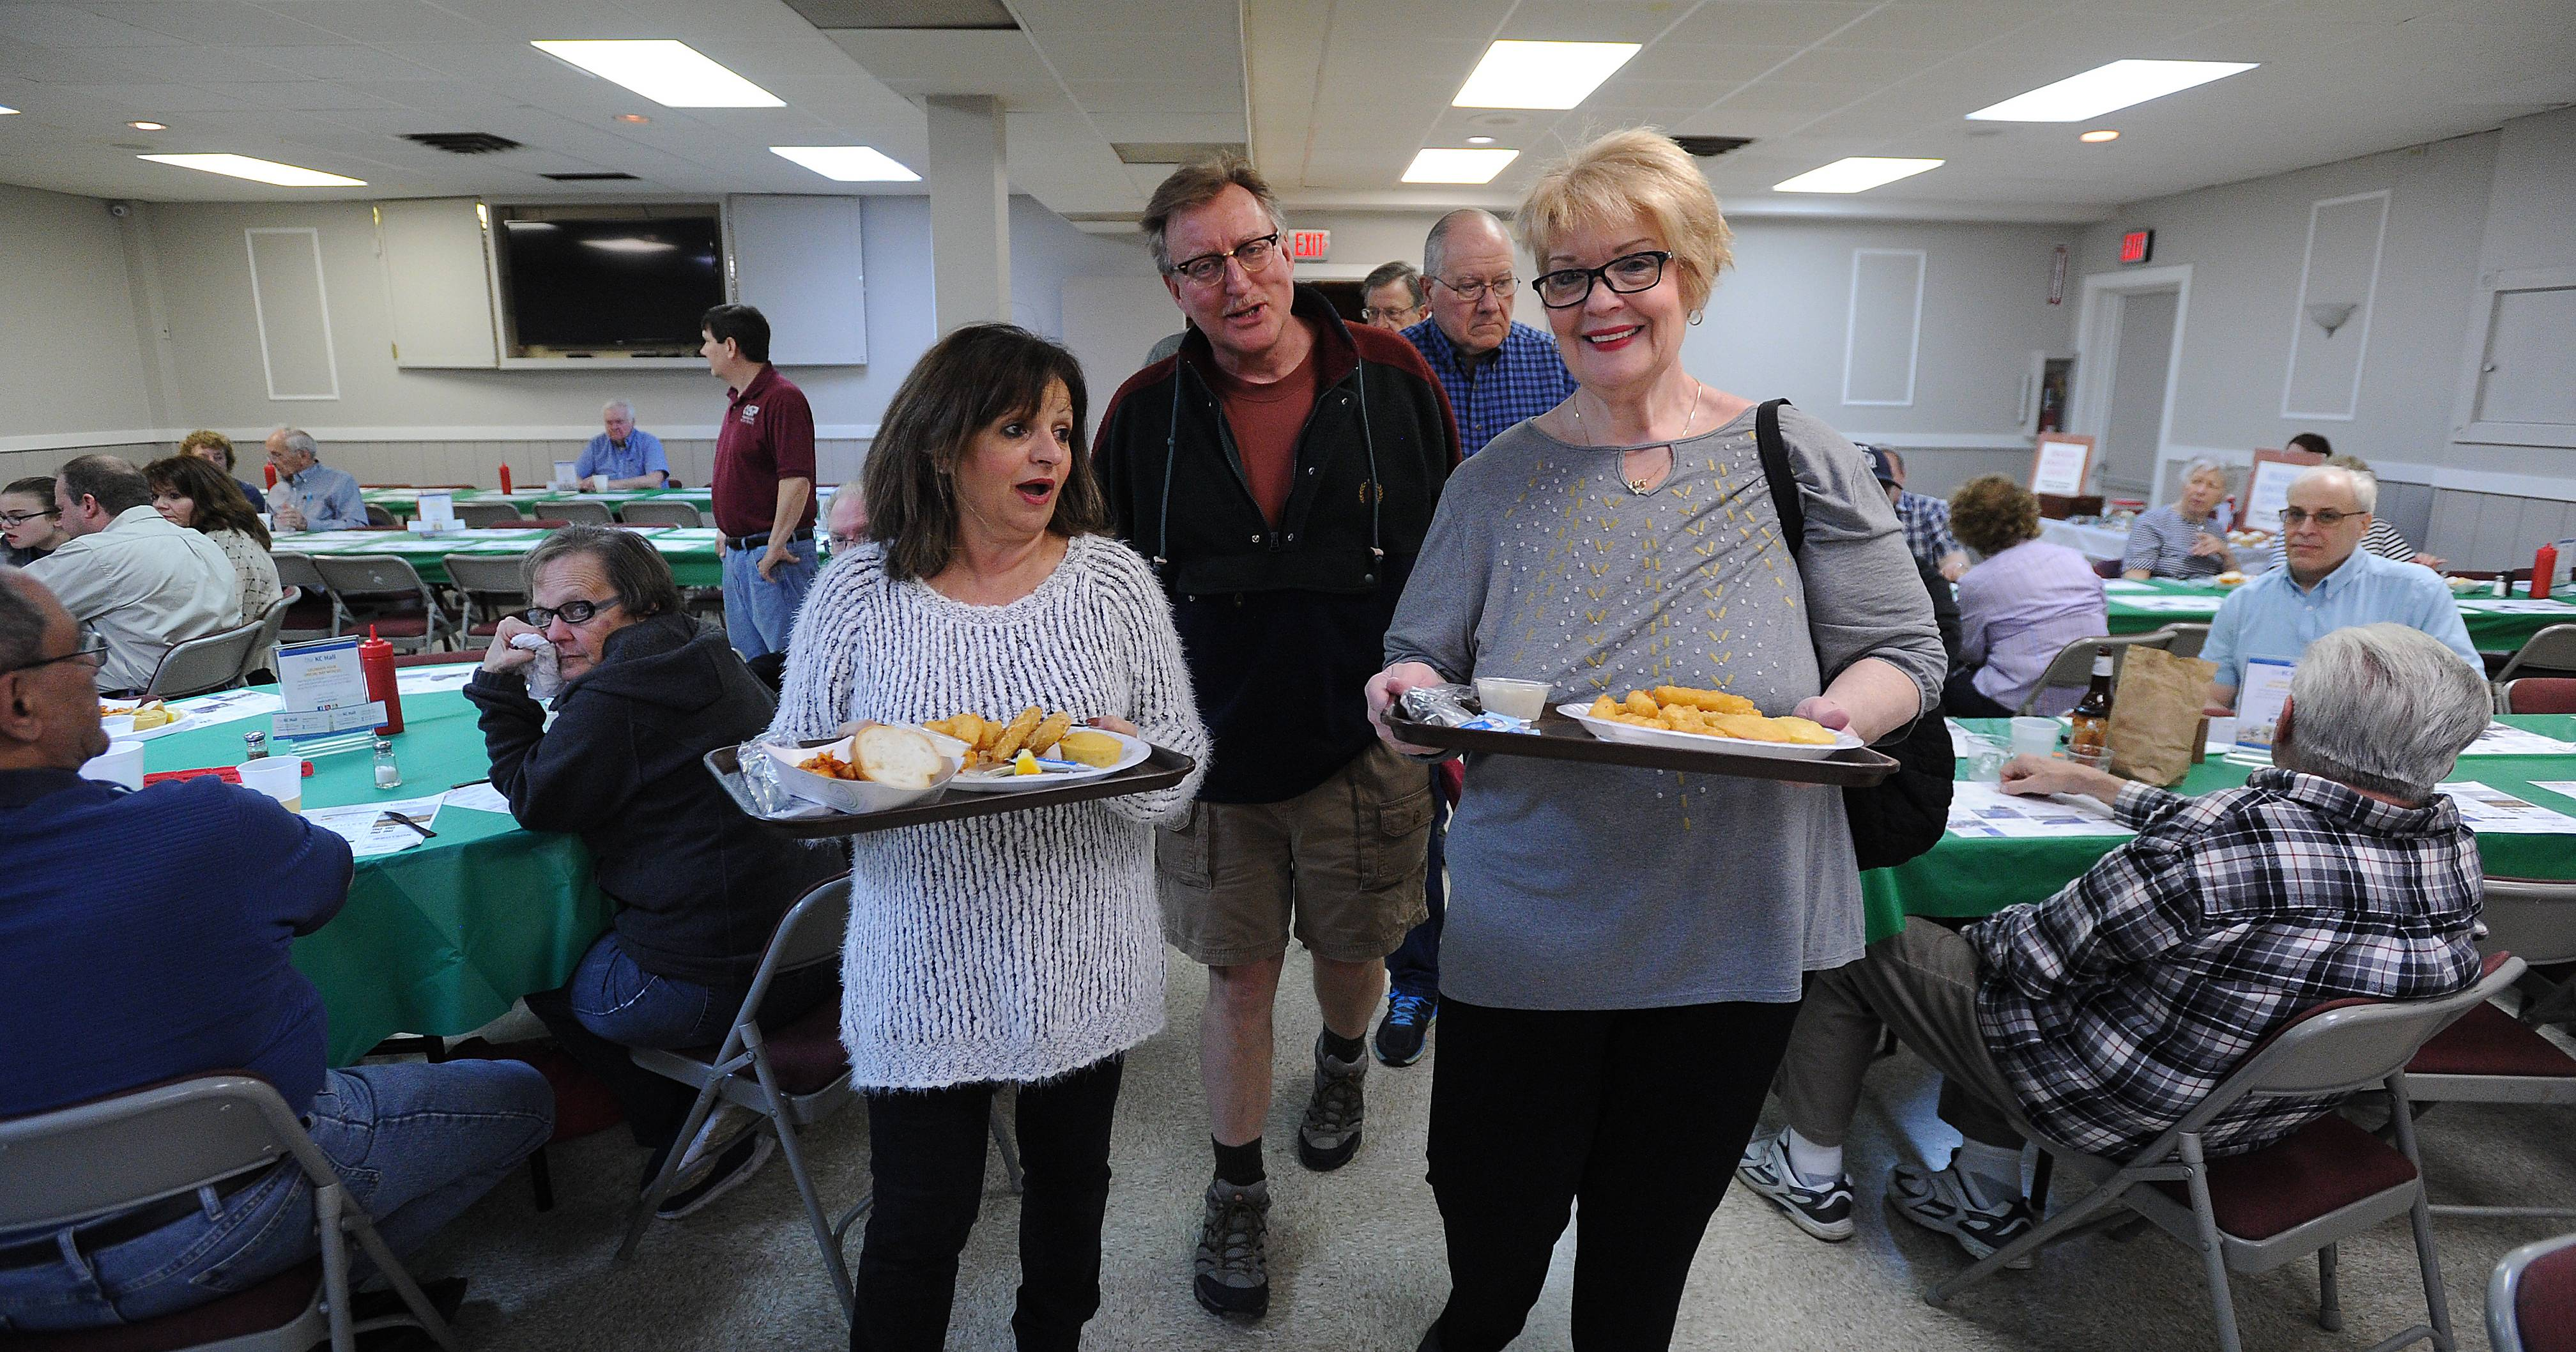 Mark Stastny, director of marketing at the Knights of Columbus Hall in Arlington Heights, talks with Mary Lee and Kathy Hoyos of Rolling Meadows during a recent Lenten fish fry in the renovated main hall.